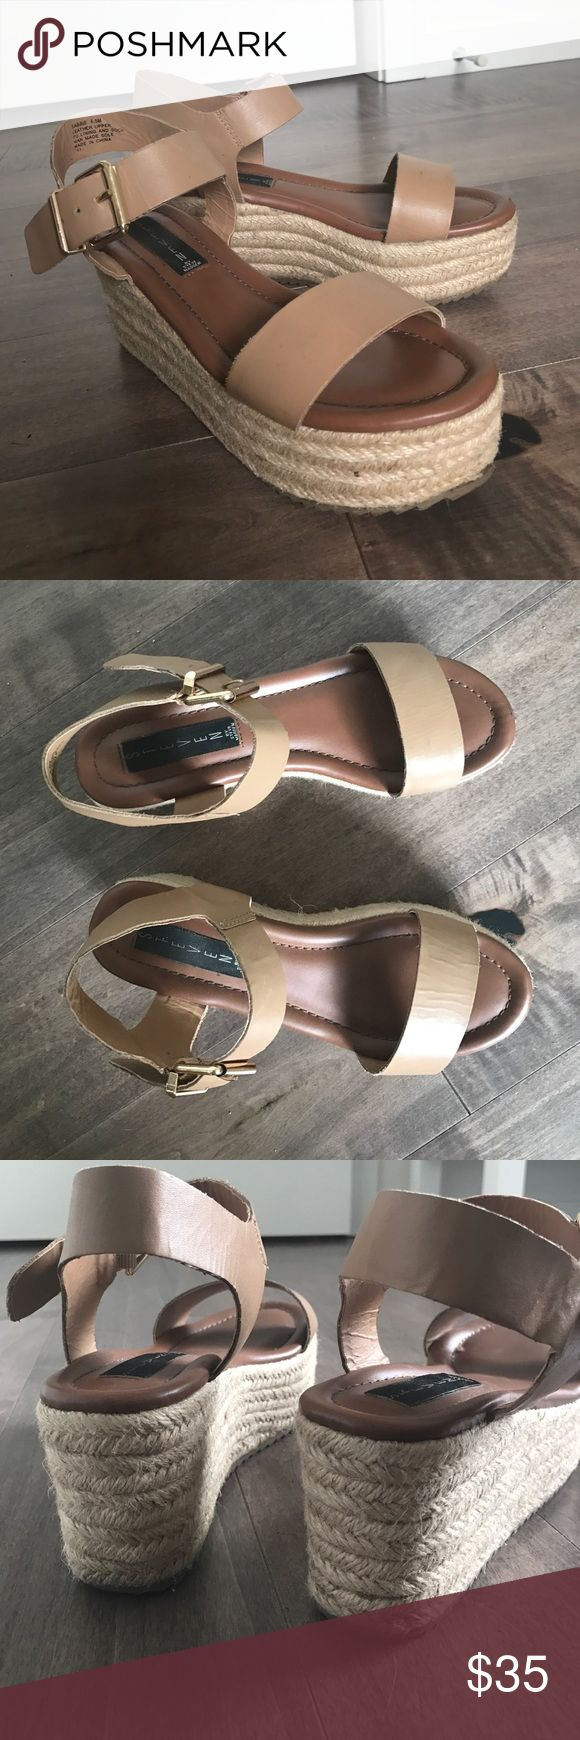 Steve Madden Sabbie platform heels Great platform shoes cute with spring dresses! Minimal signs of wear. Super comfortable and don't make your feet hurt like higher wedges! Steve Madden Shoes Platforms